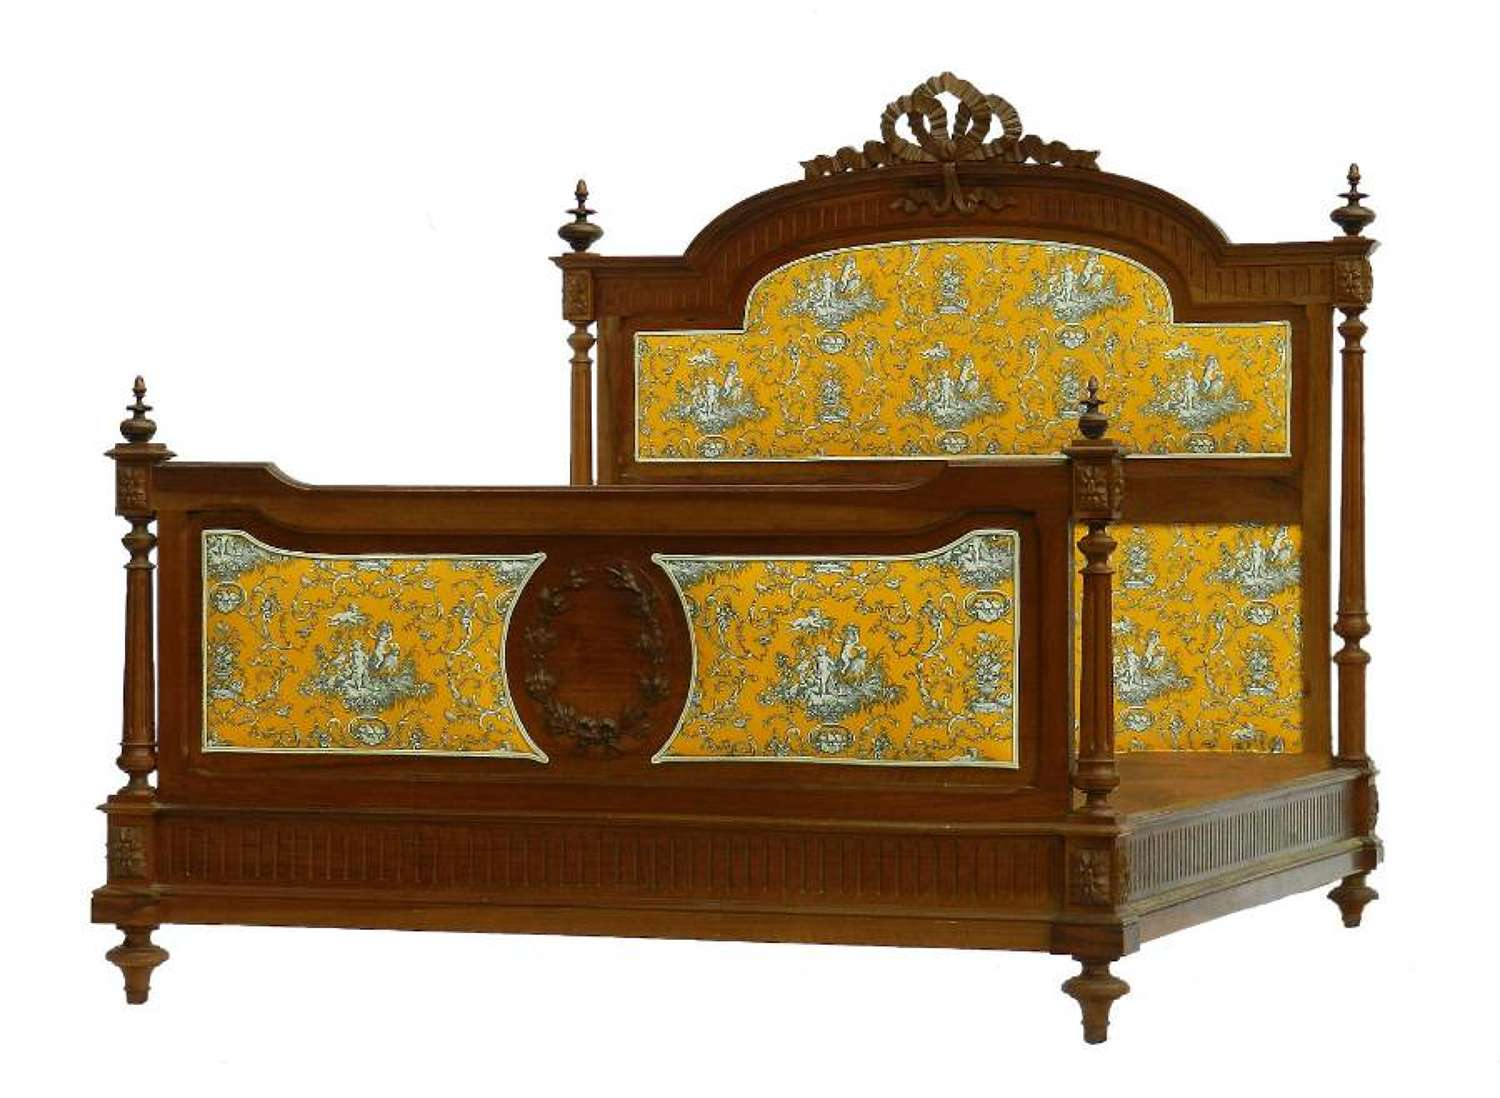 French Bed + Base UK King size US Queen 19th Century Louis can change covers if required